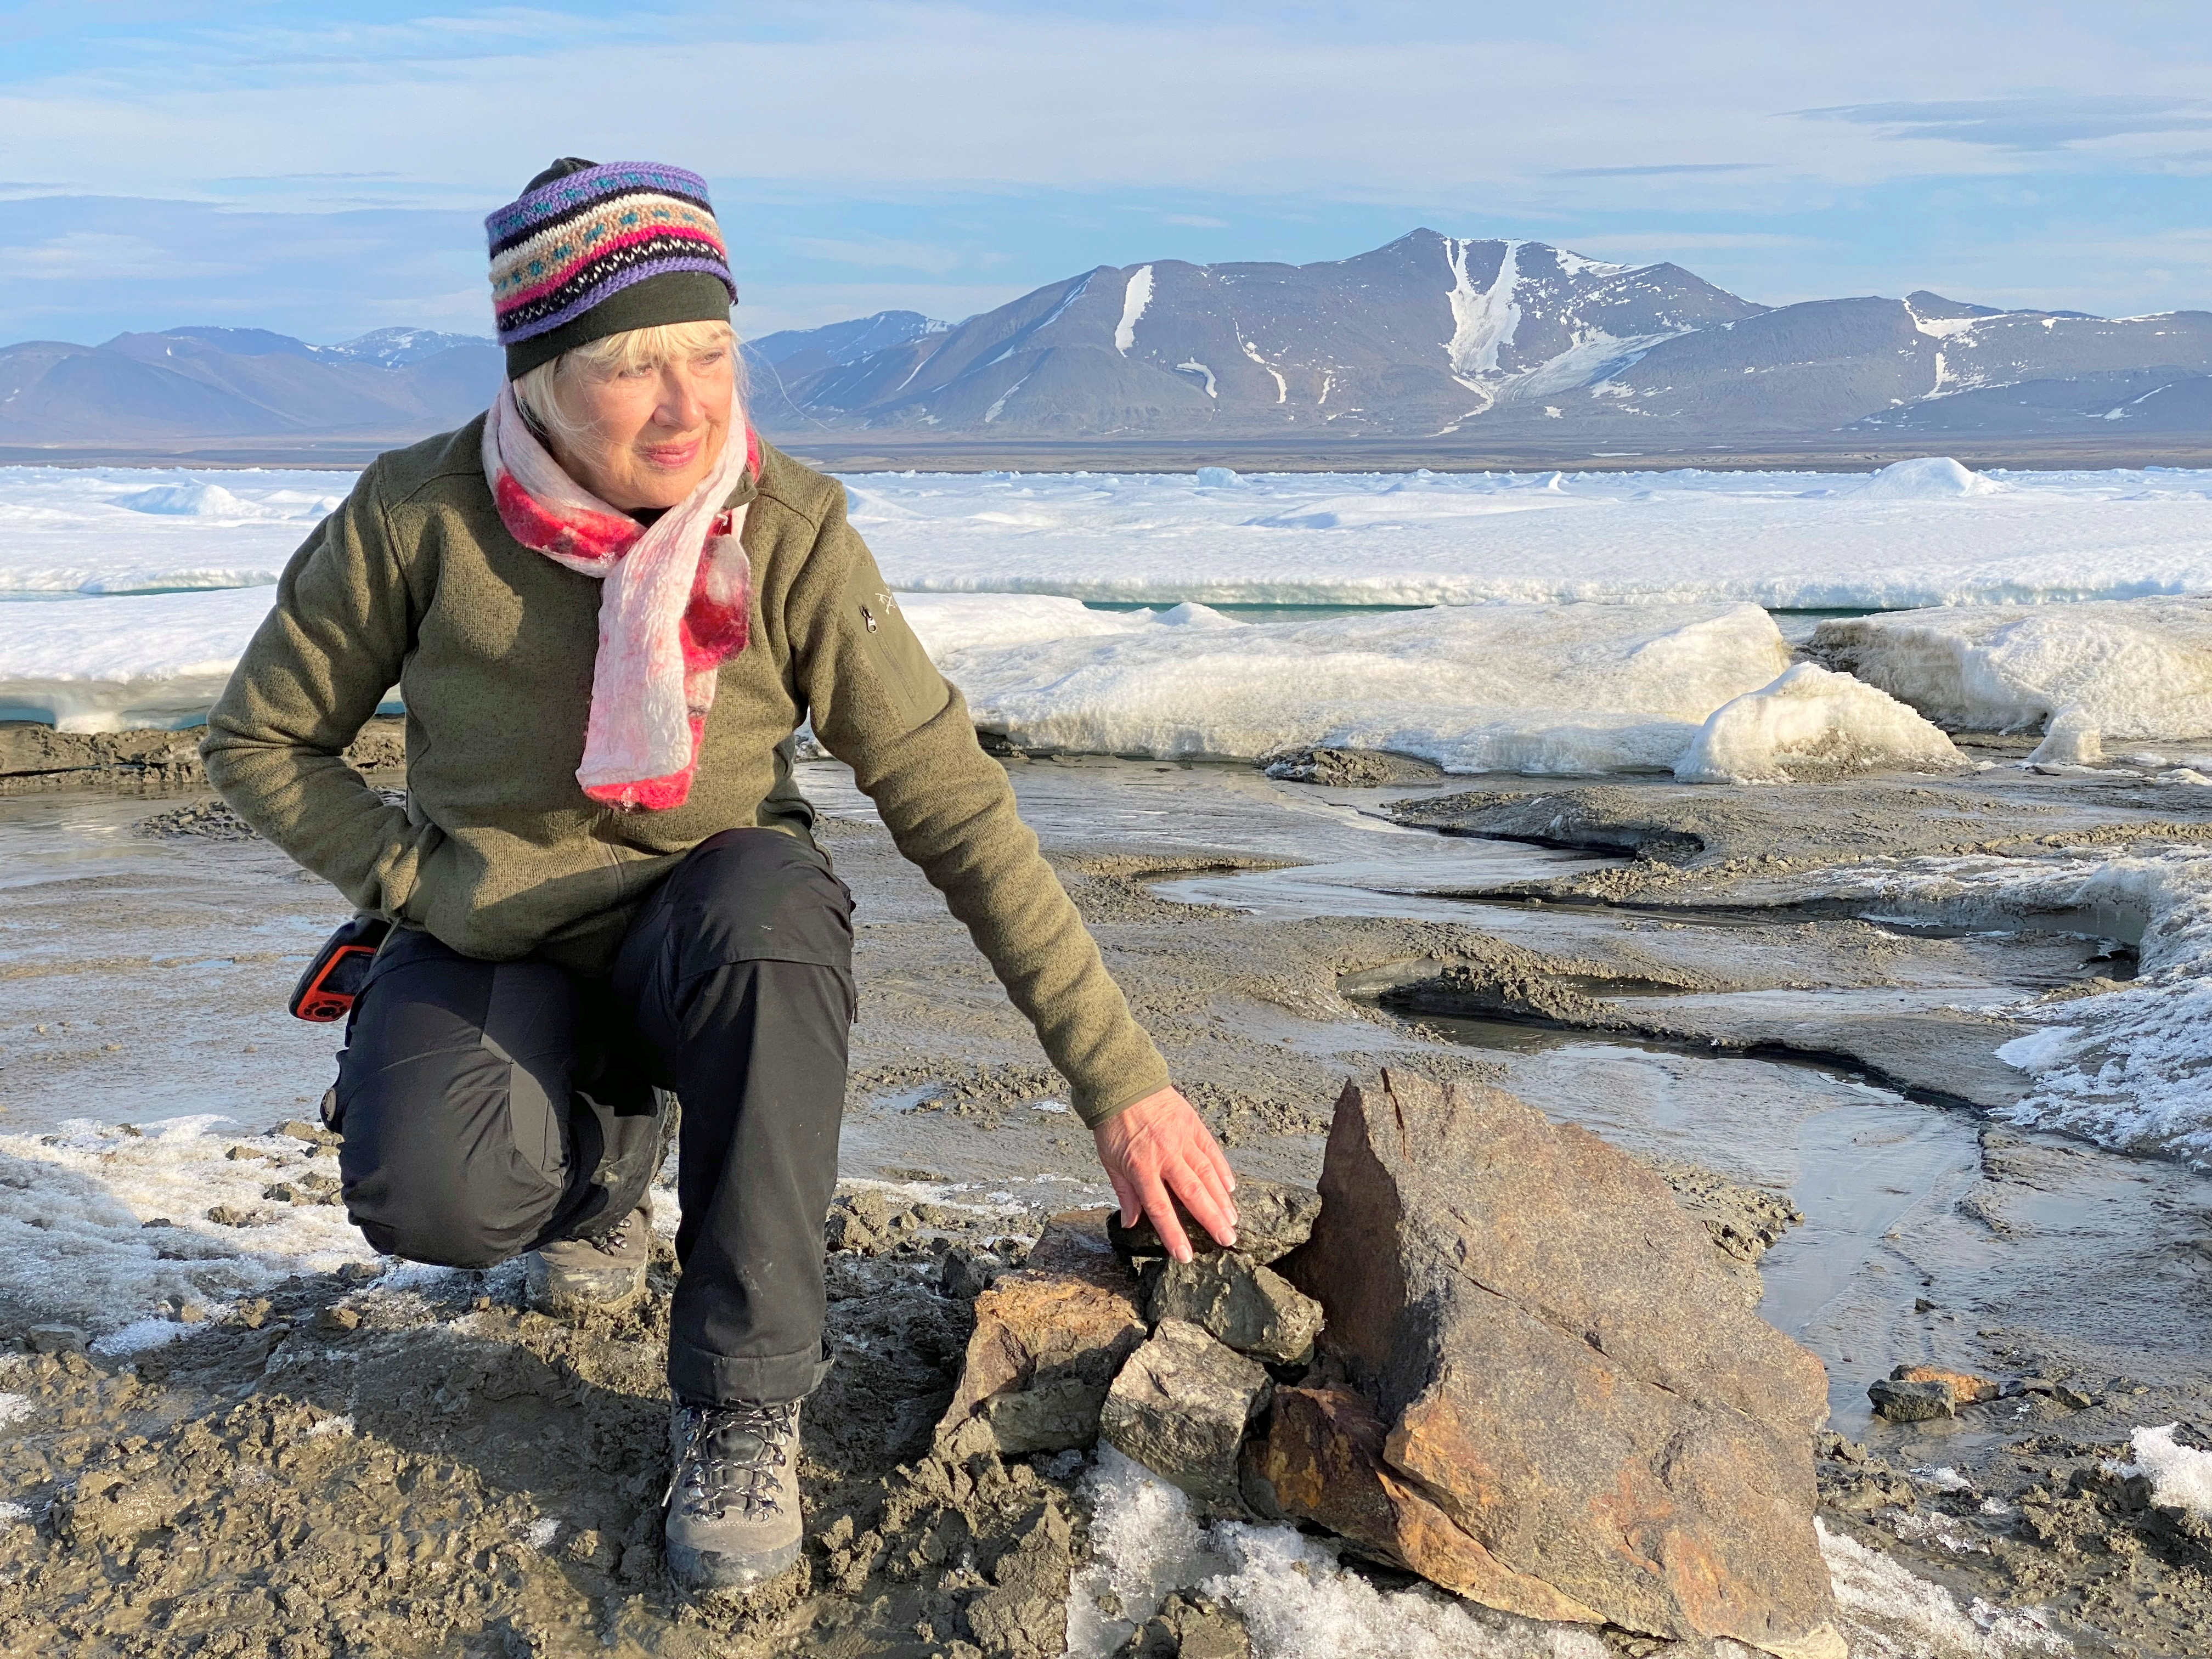 An undated handout image of Swiss entrepreneur Christiane Leister, creator of the Leister Foundation that financed an expedition which discovered a tiny island off the coast of Greenland which they say is the world's northernmost point of land, in front of a cairn in which expedition members left a message with details of their visit. Julian Charriere/via REUTERS